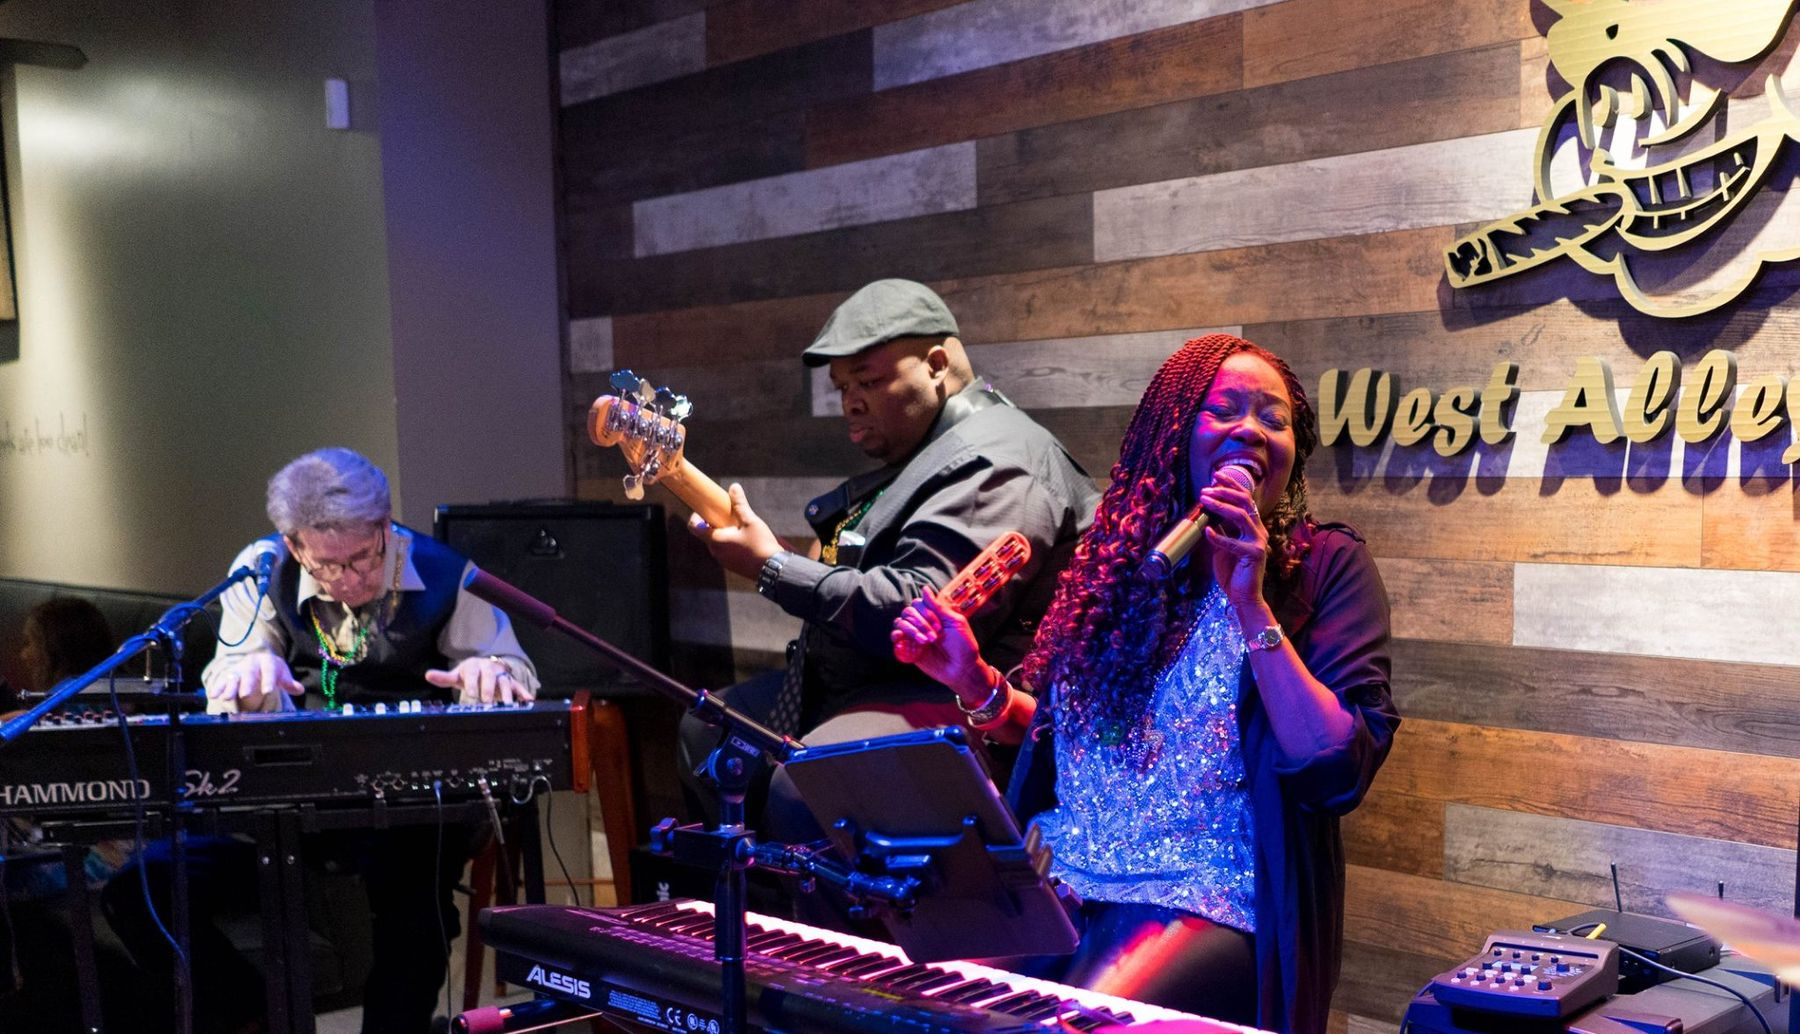 Sandra Bassett performs at West Alley BBQ